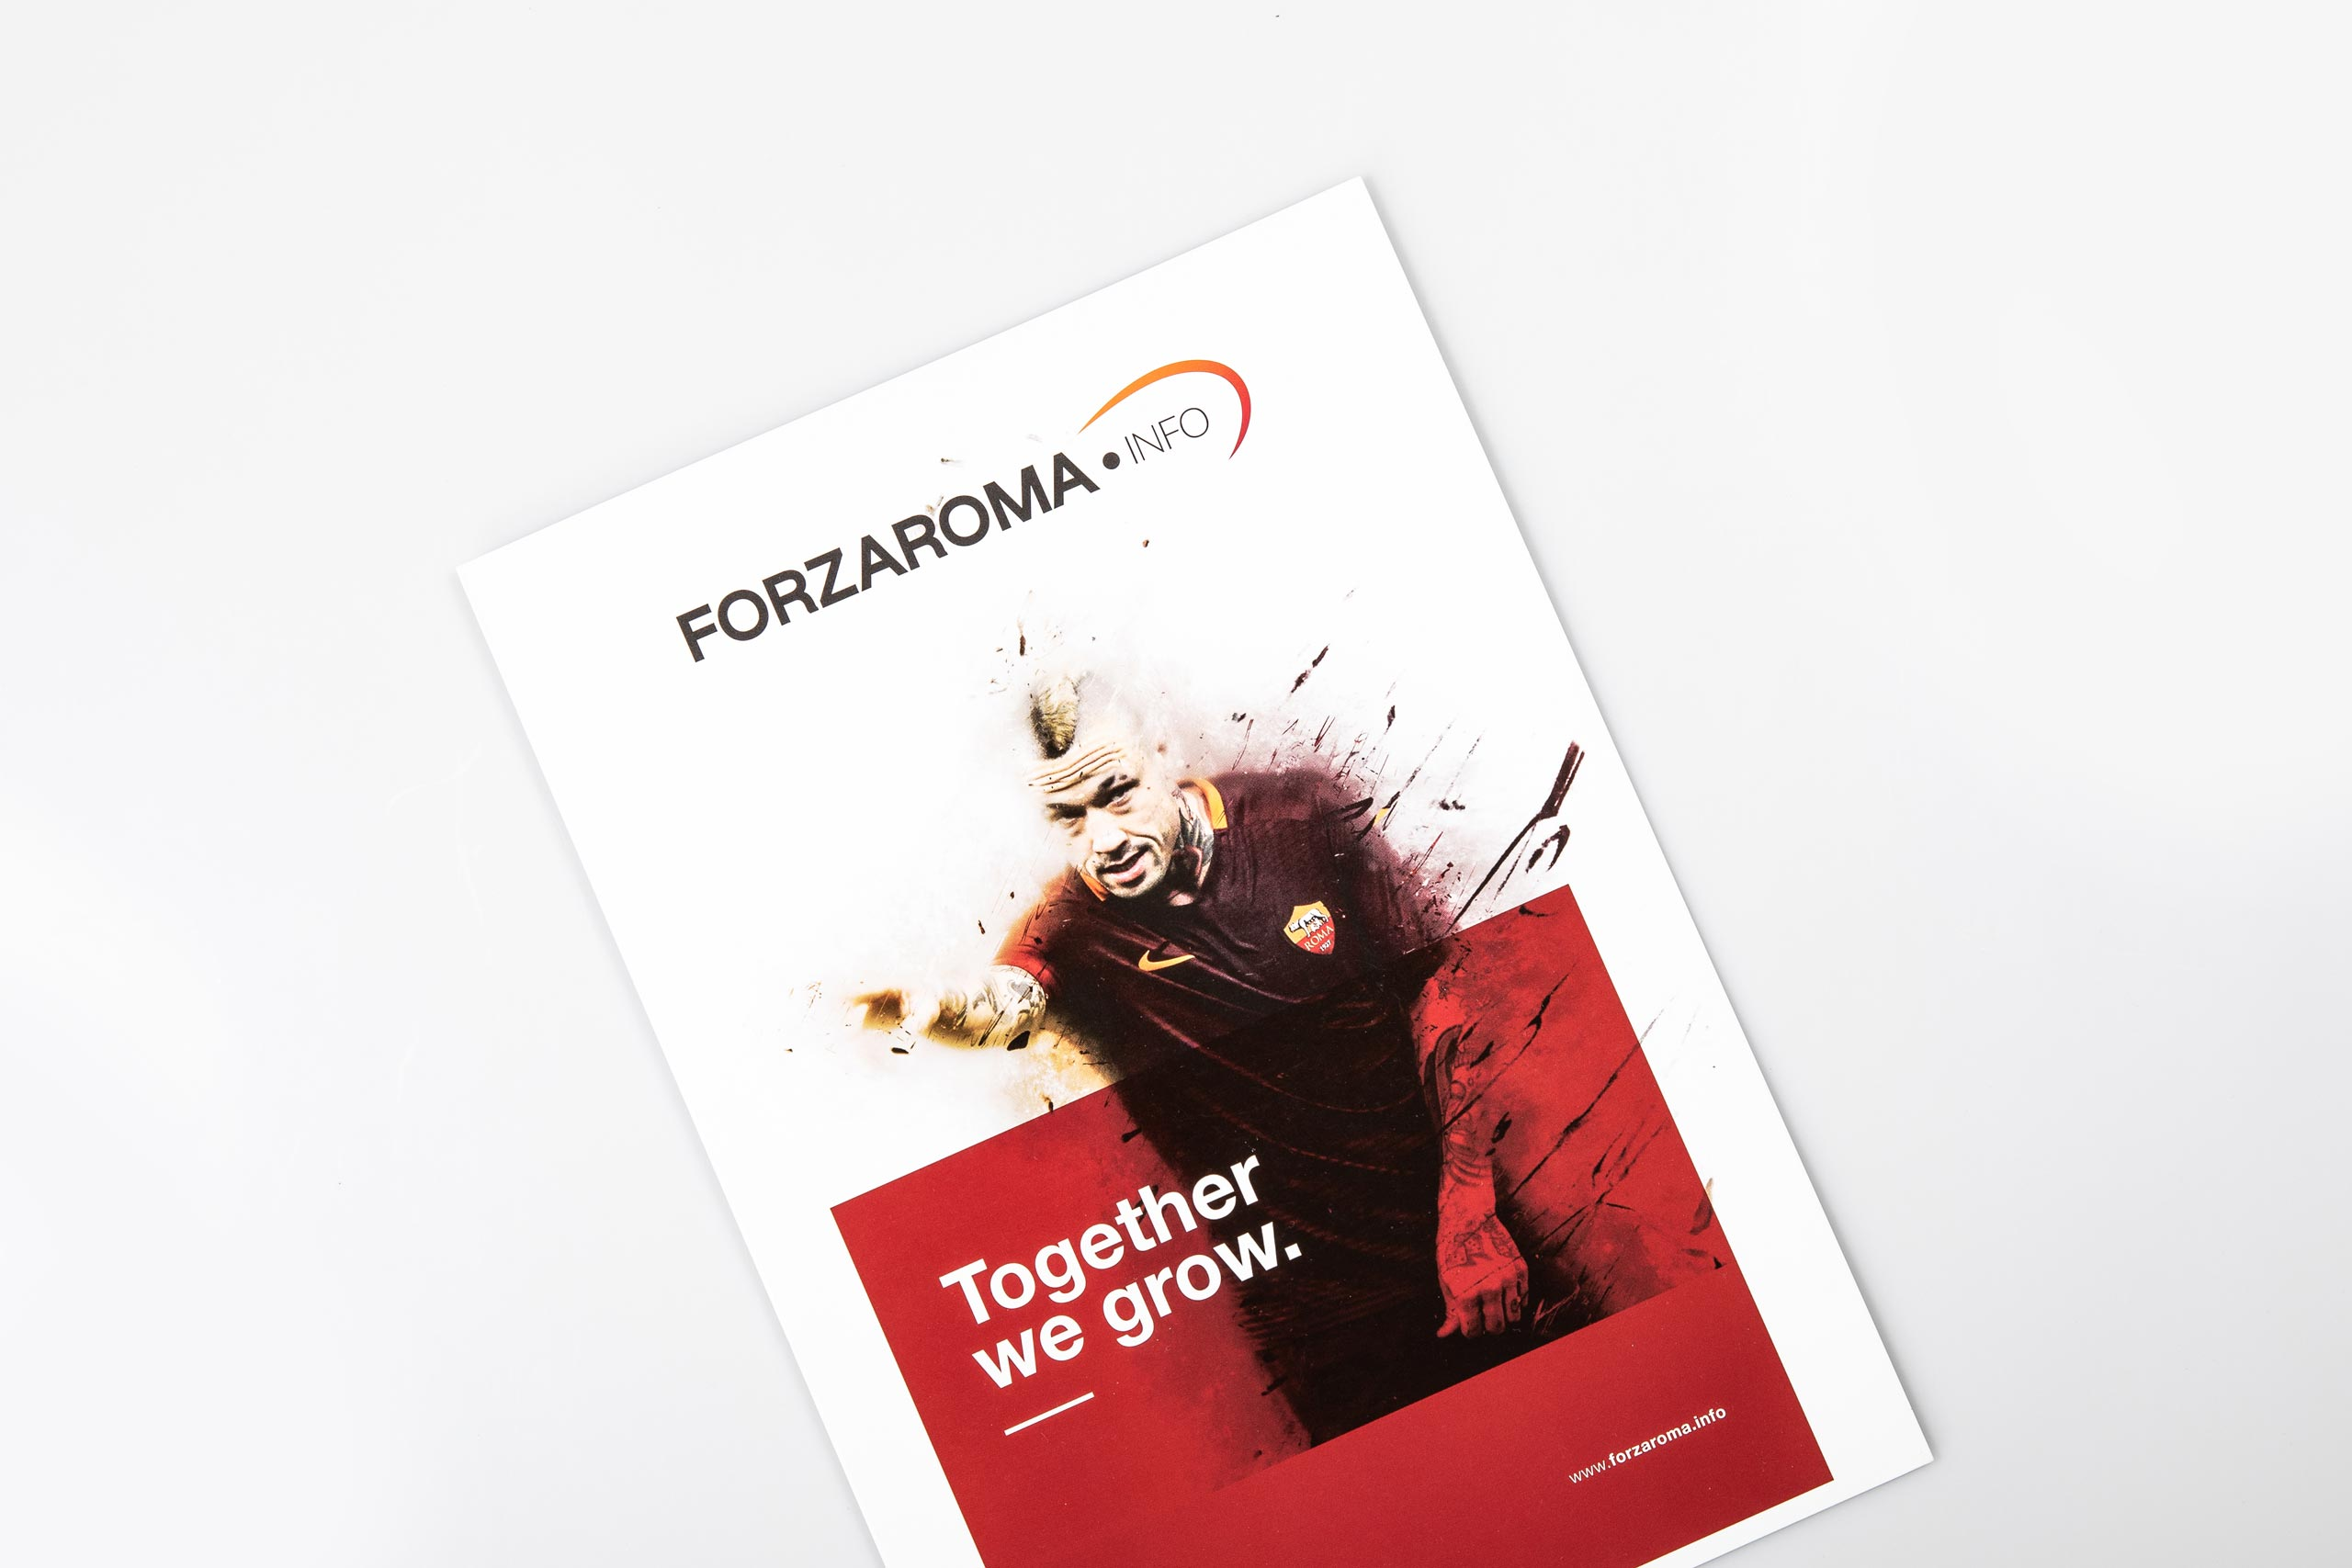 bouncy-particle-comunicazione-marketing-forzaroma-info